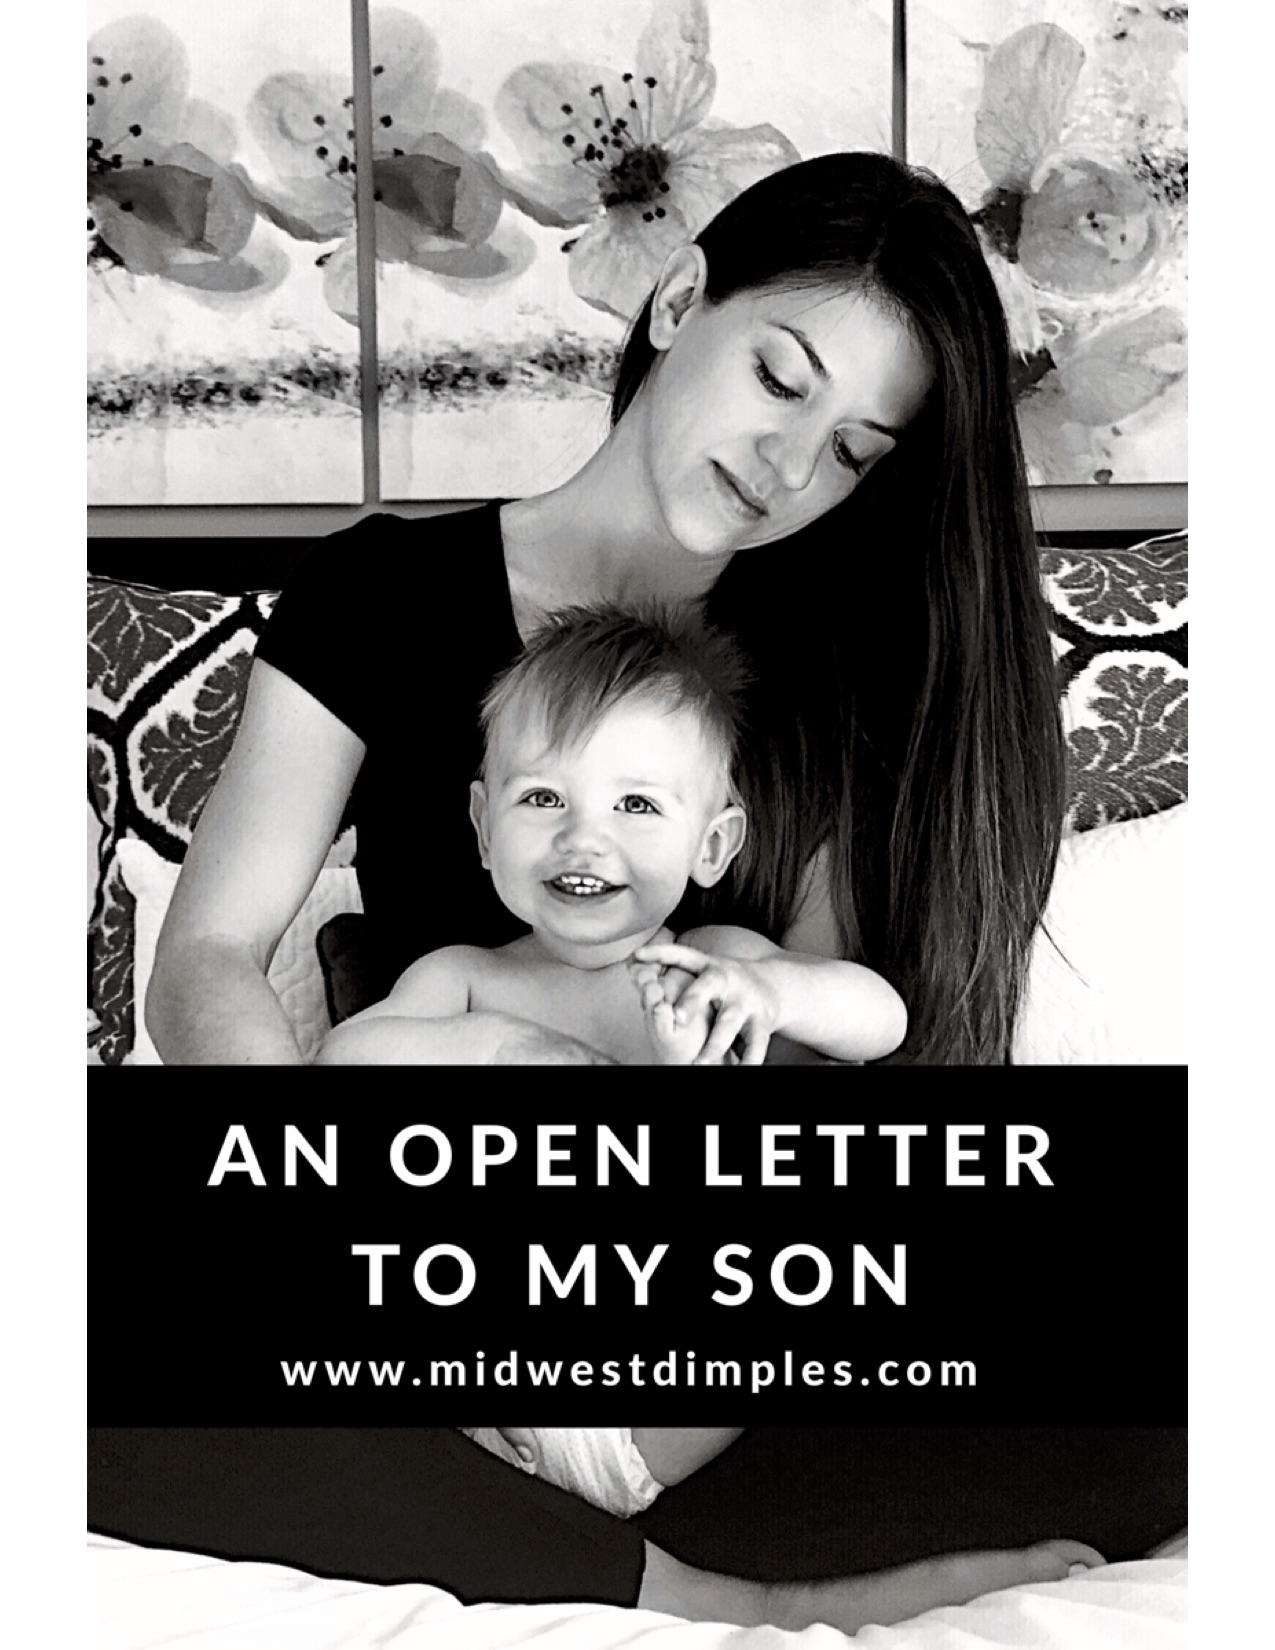 An open letter to my son